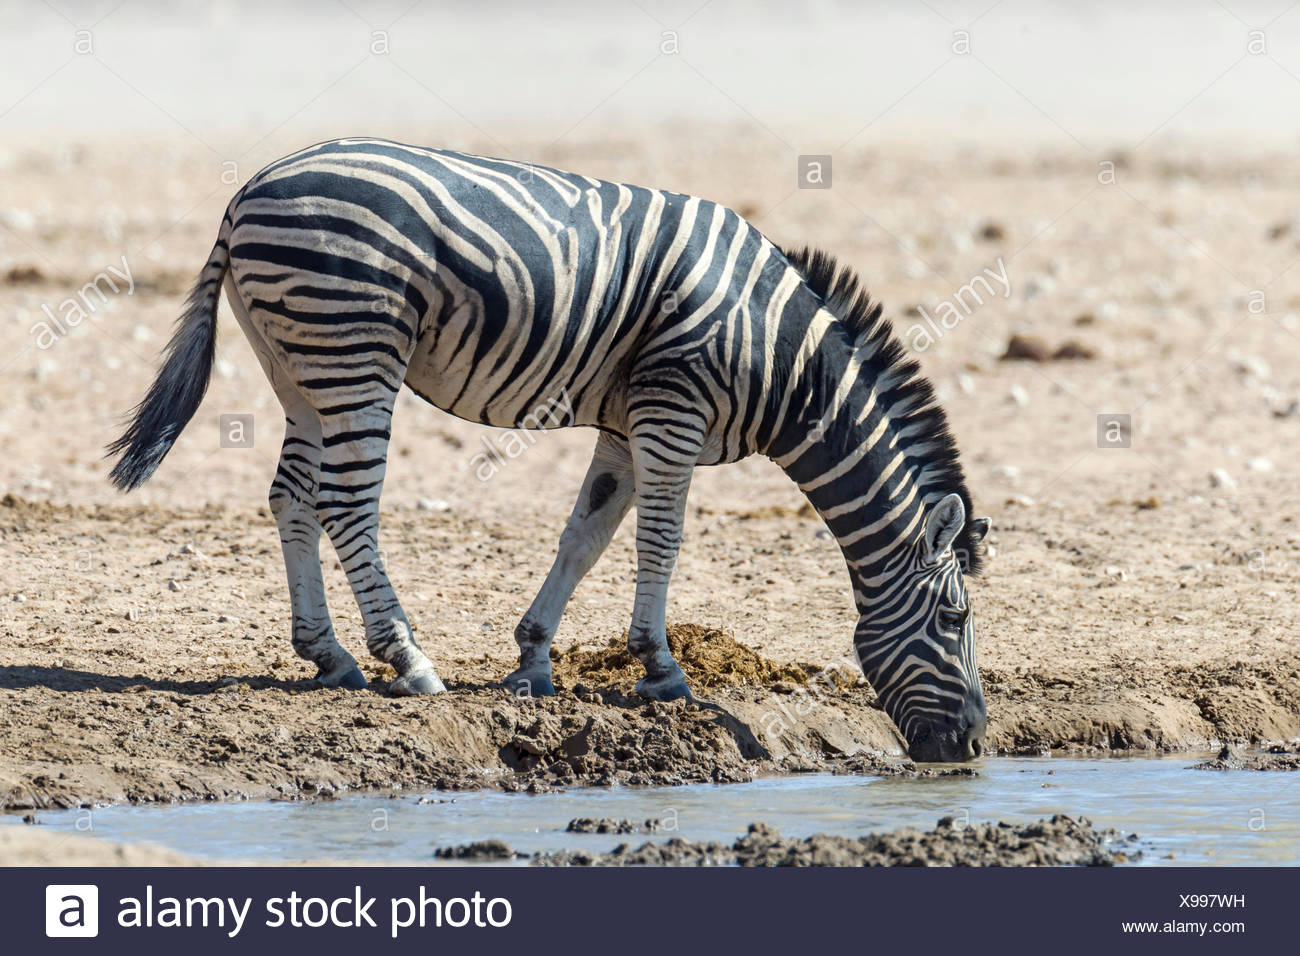 Zèbre des plaines (Equus quagga) au waterhole, Etosha National Park, Namibie Photo Stock